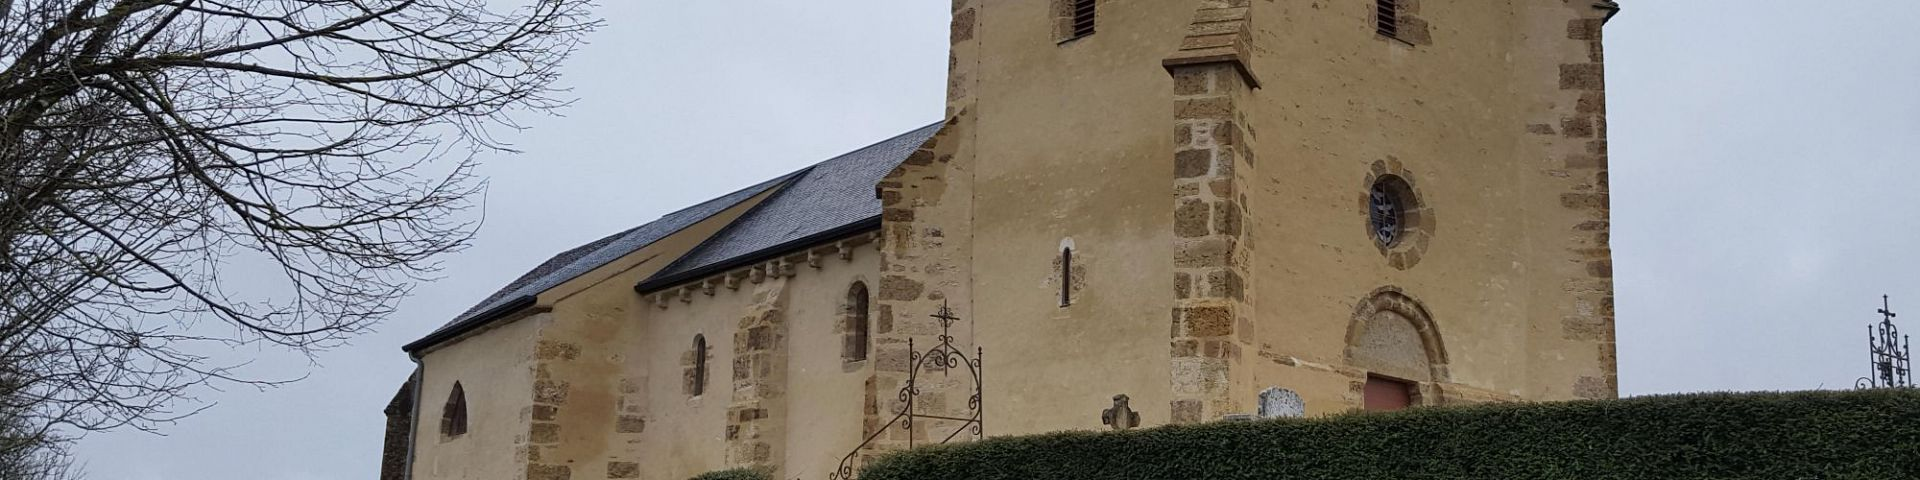 Neuffontaines - Chapelle St-Pierre dite Mont-Sabot (58)